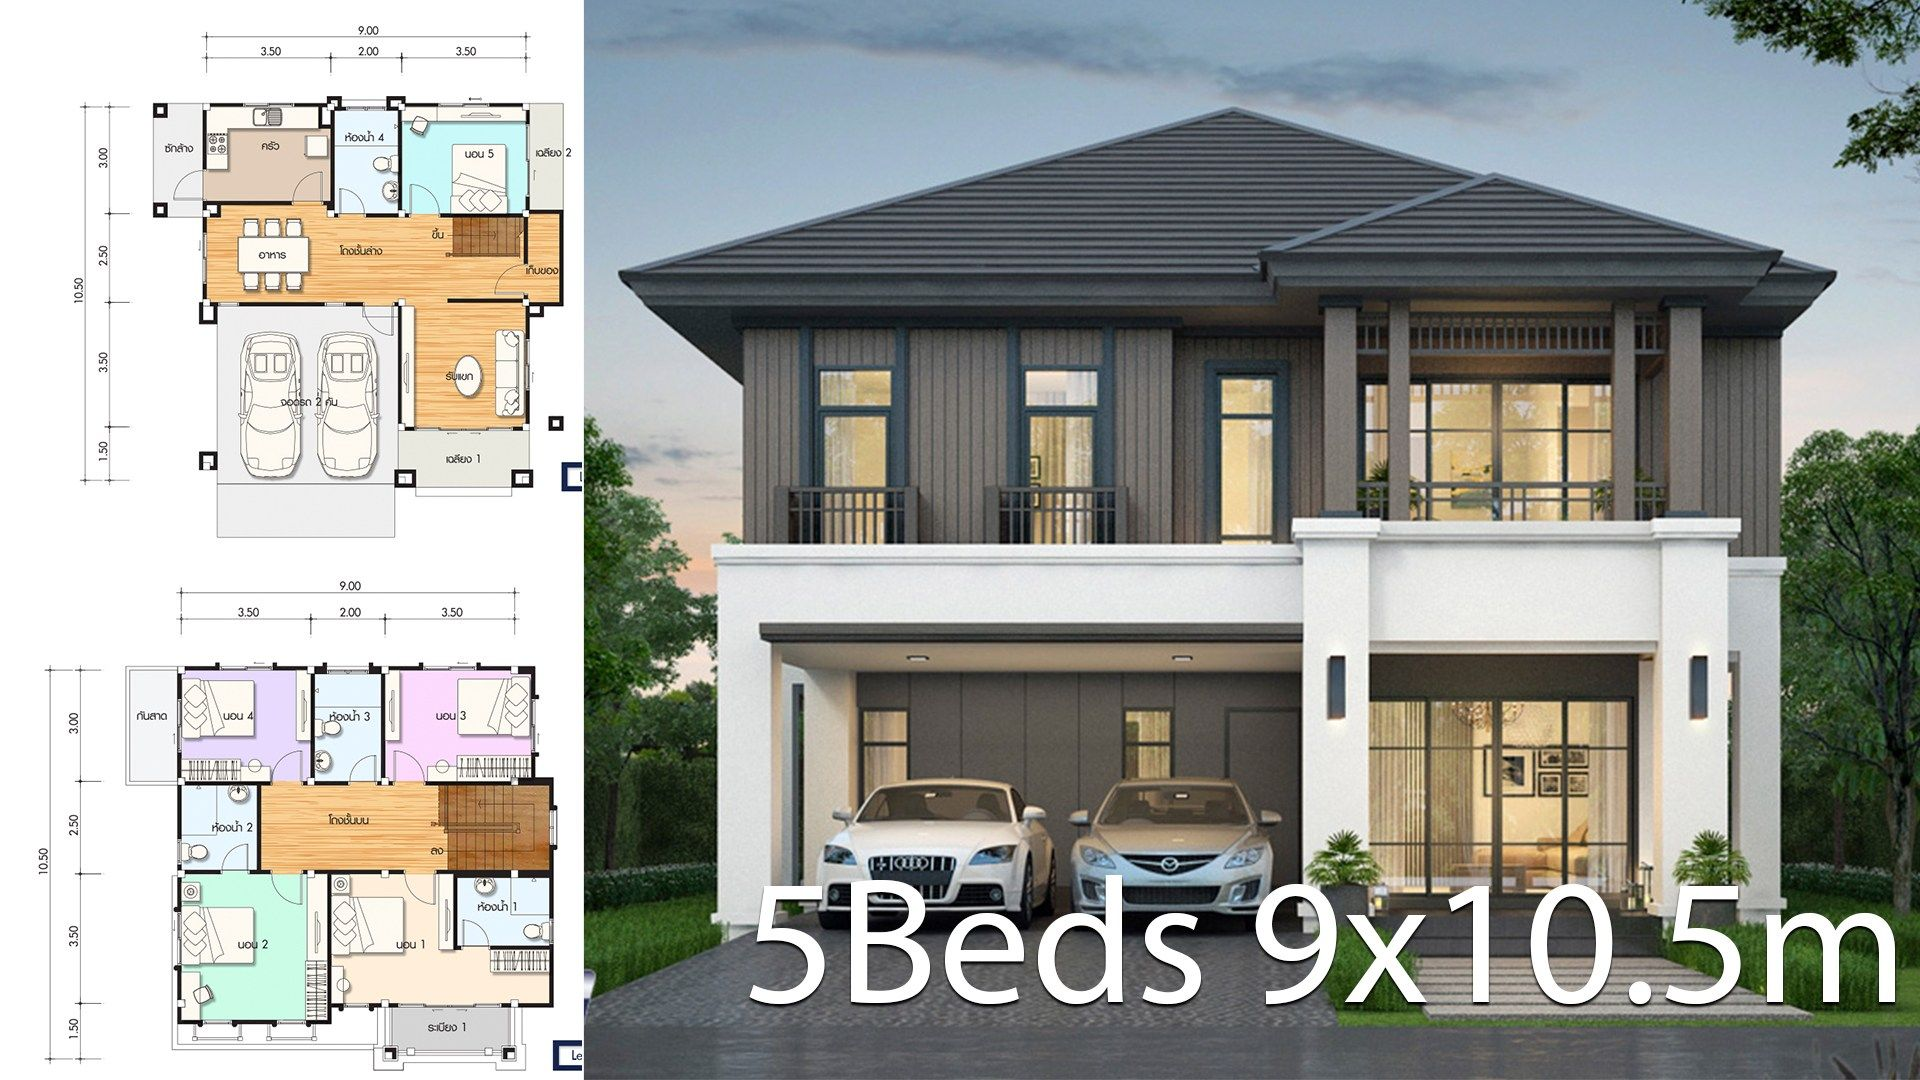 House Design Plan 9x10 5m With 5 Bedrooms Home Ideas Home Design Plans Duplex House Design Architectural House Plans